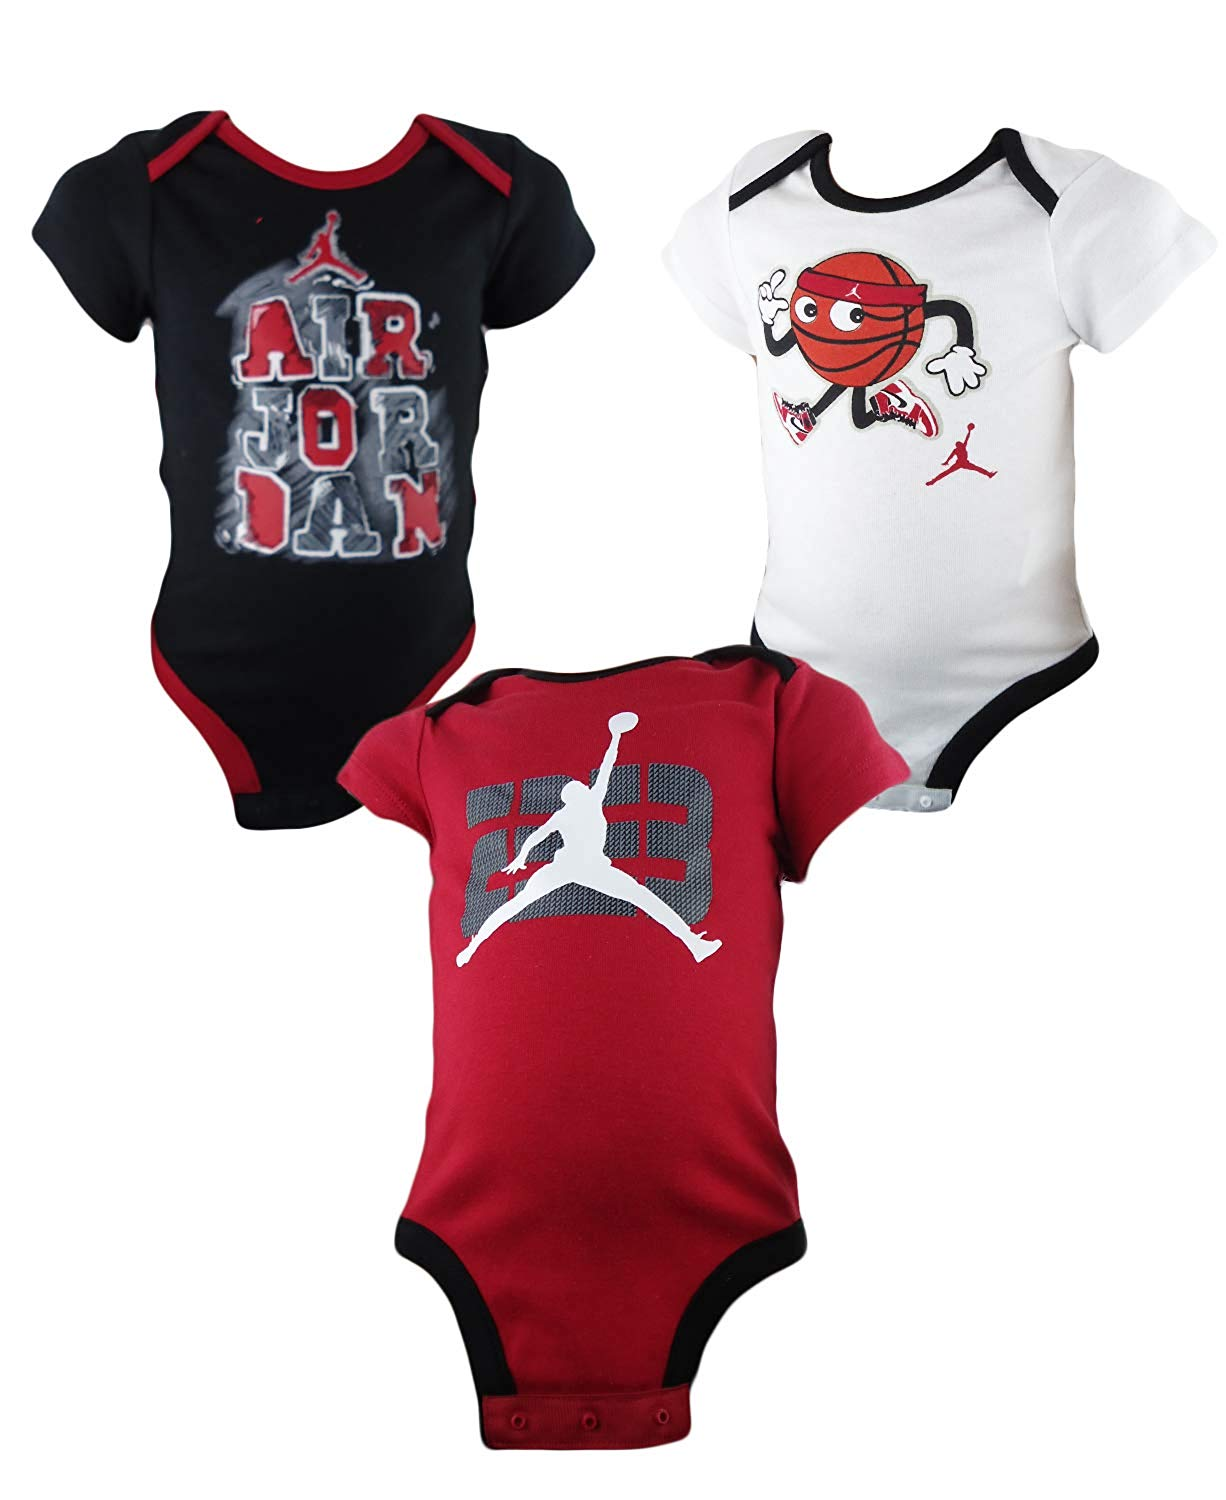 9042479ba32247 AIR Jordan Infant 3 PC Bodysuit Set - Baby Clothes